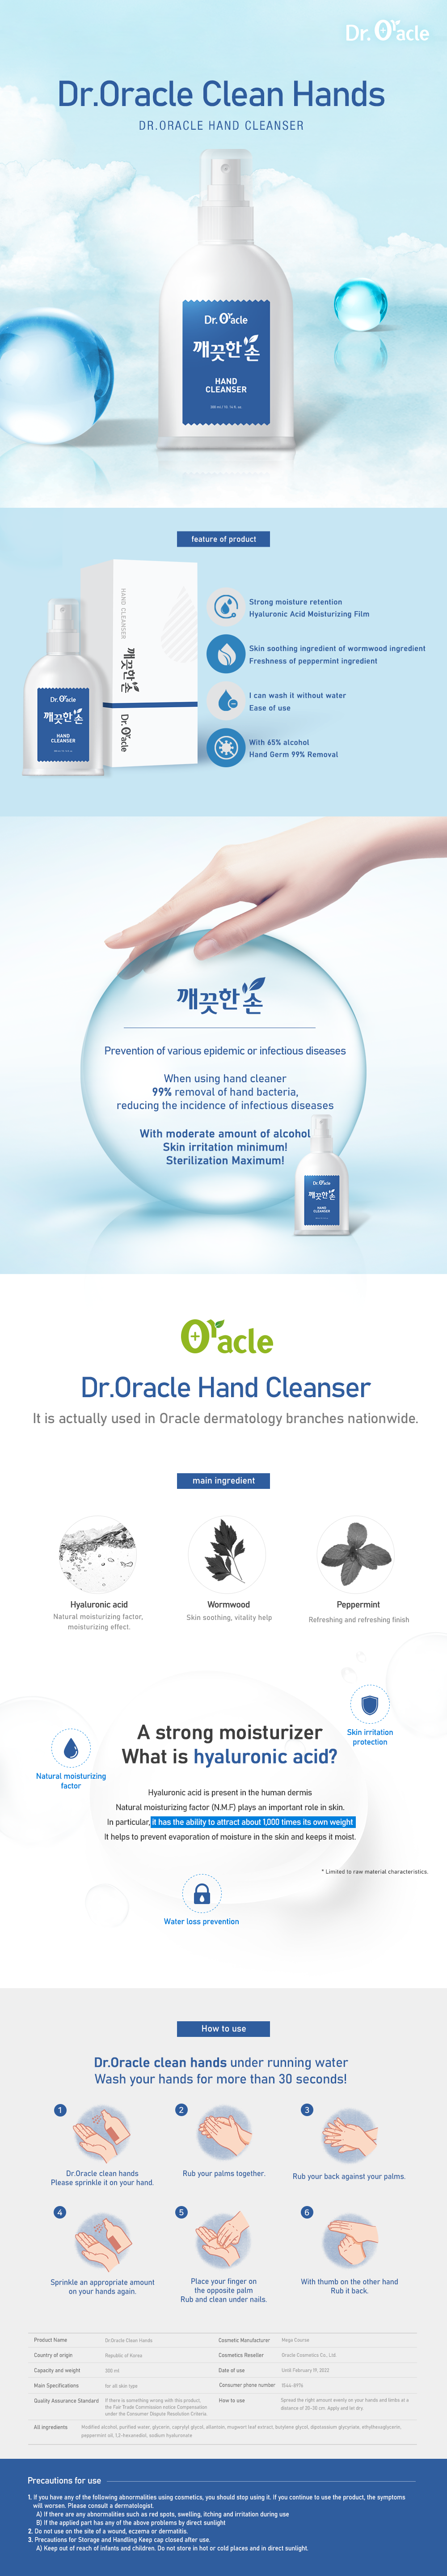 Dr.Oracle Hand Sanitizer 300ml